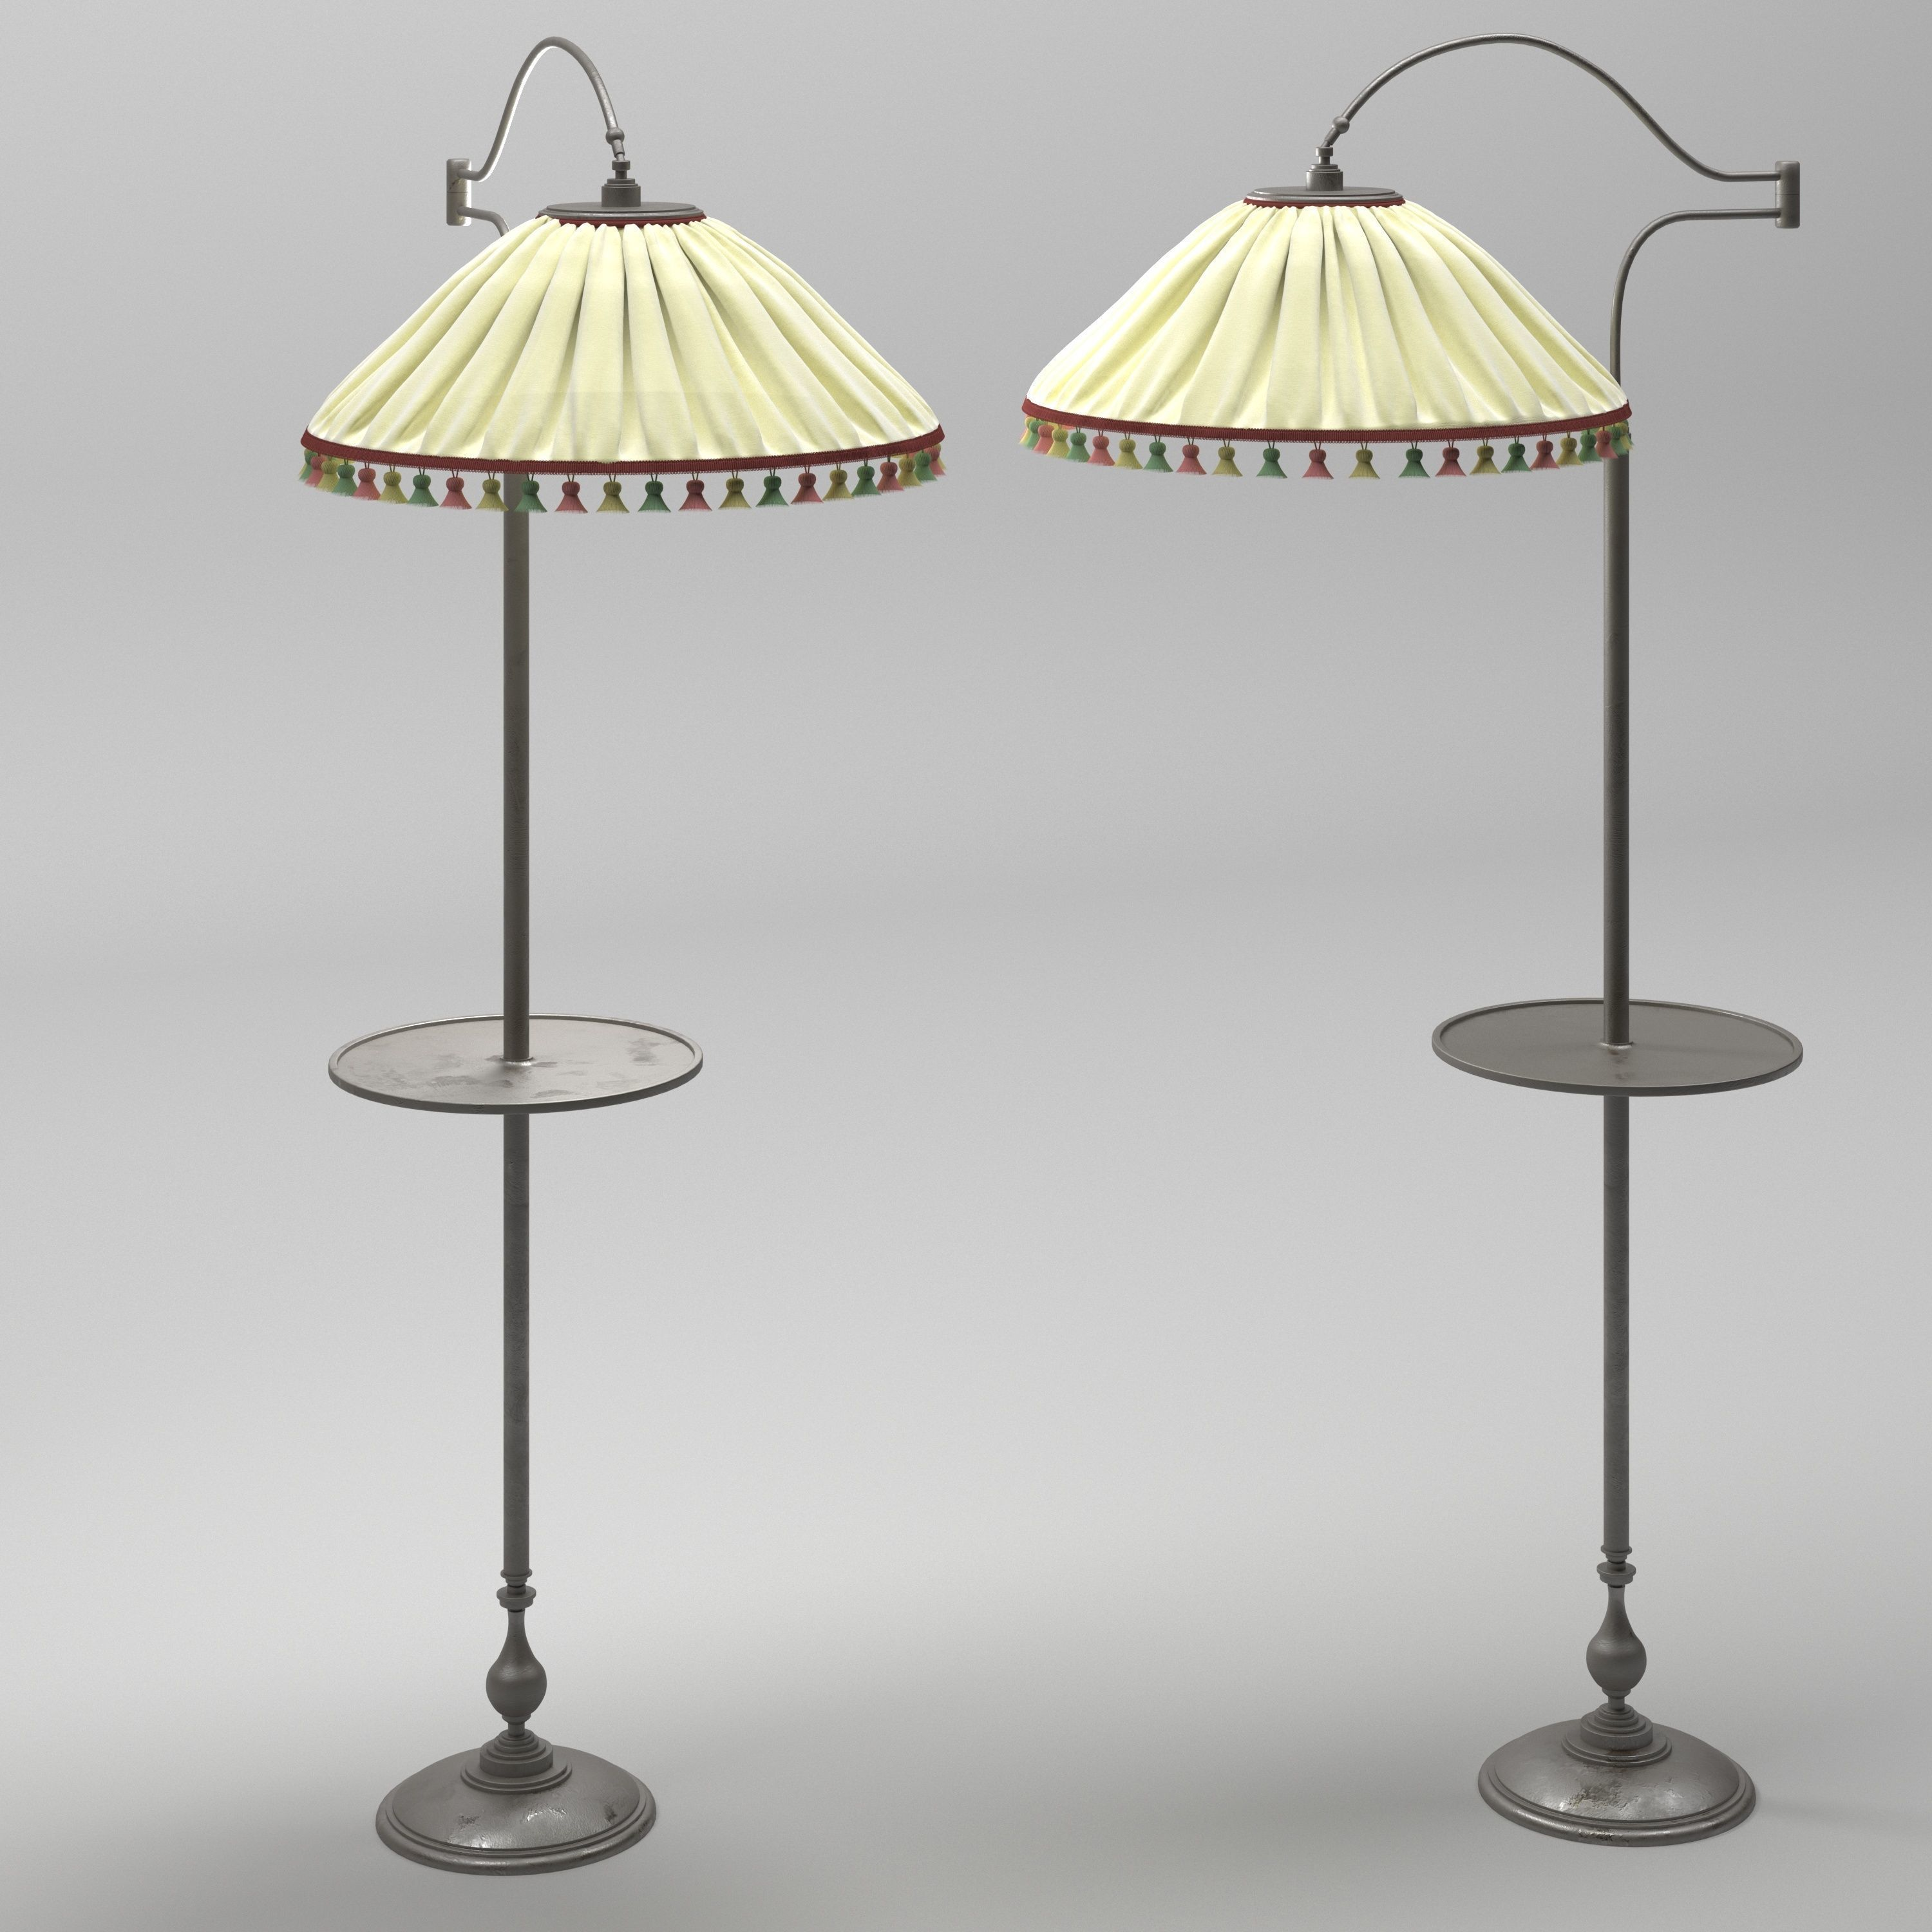 Il Paralume Marina Aletta Floor Lamp 3d Model In 2020 Floor Lamp 3d Model Lamp